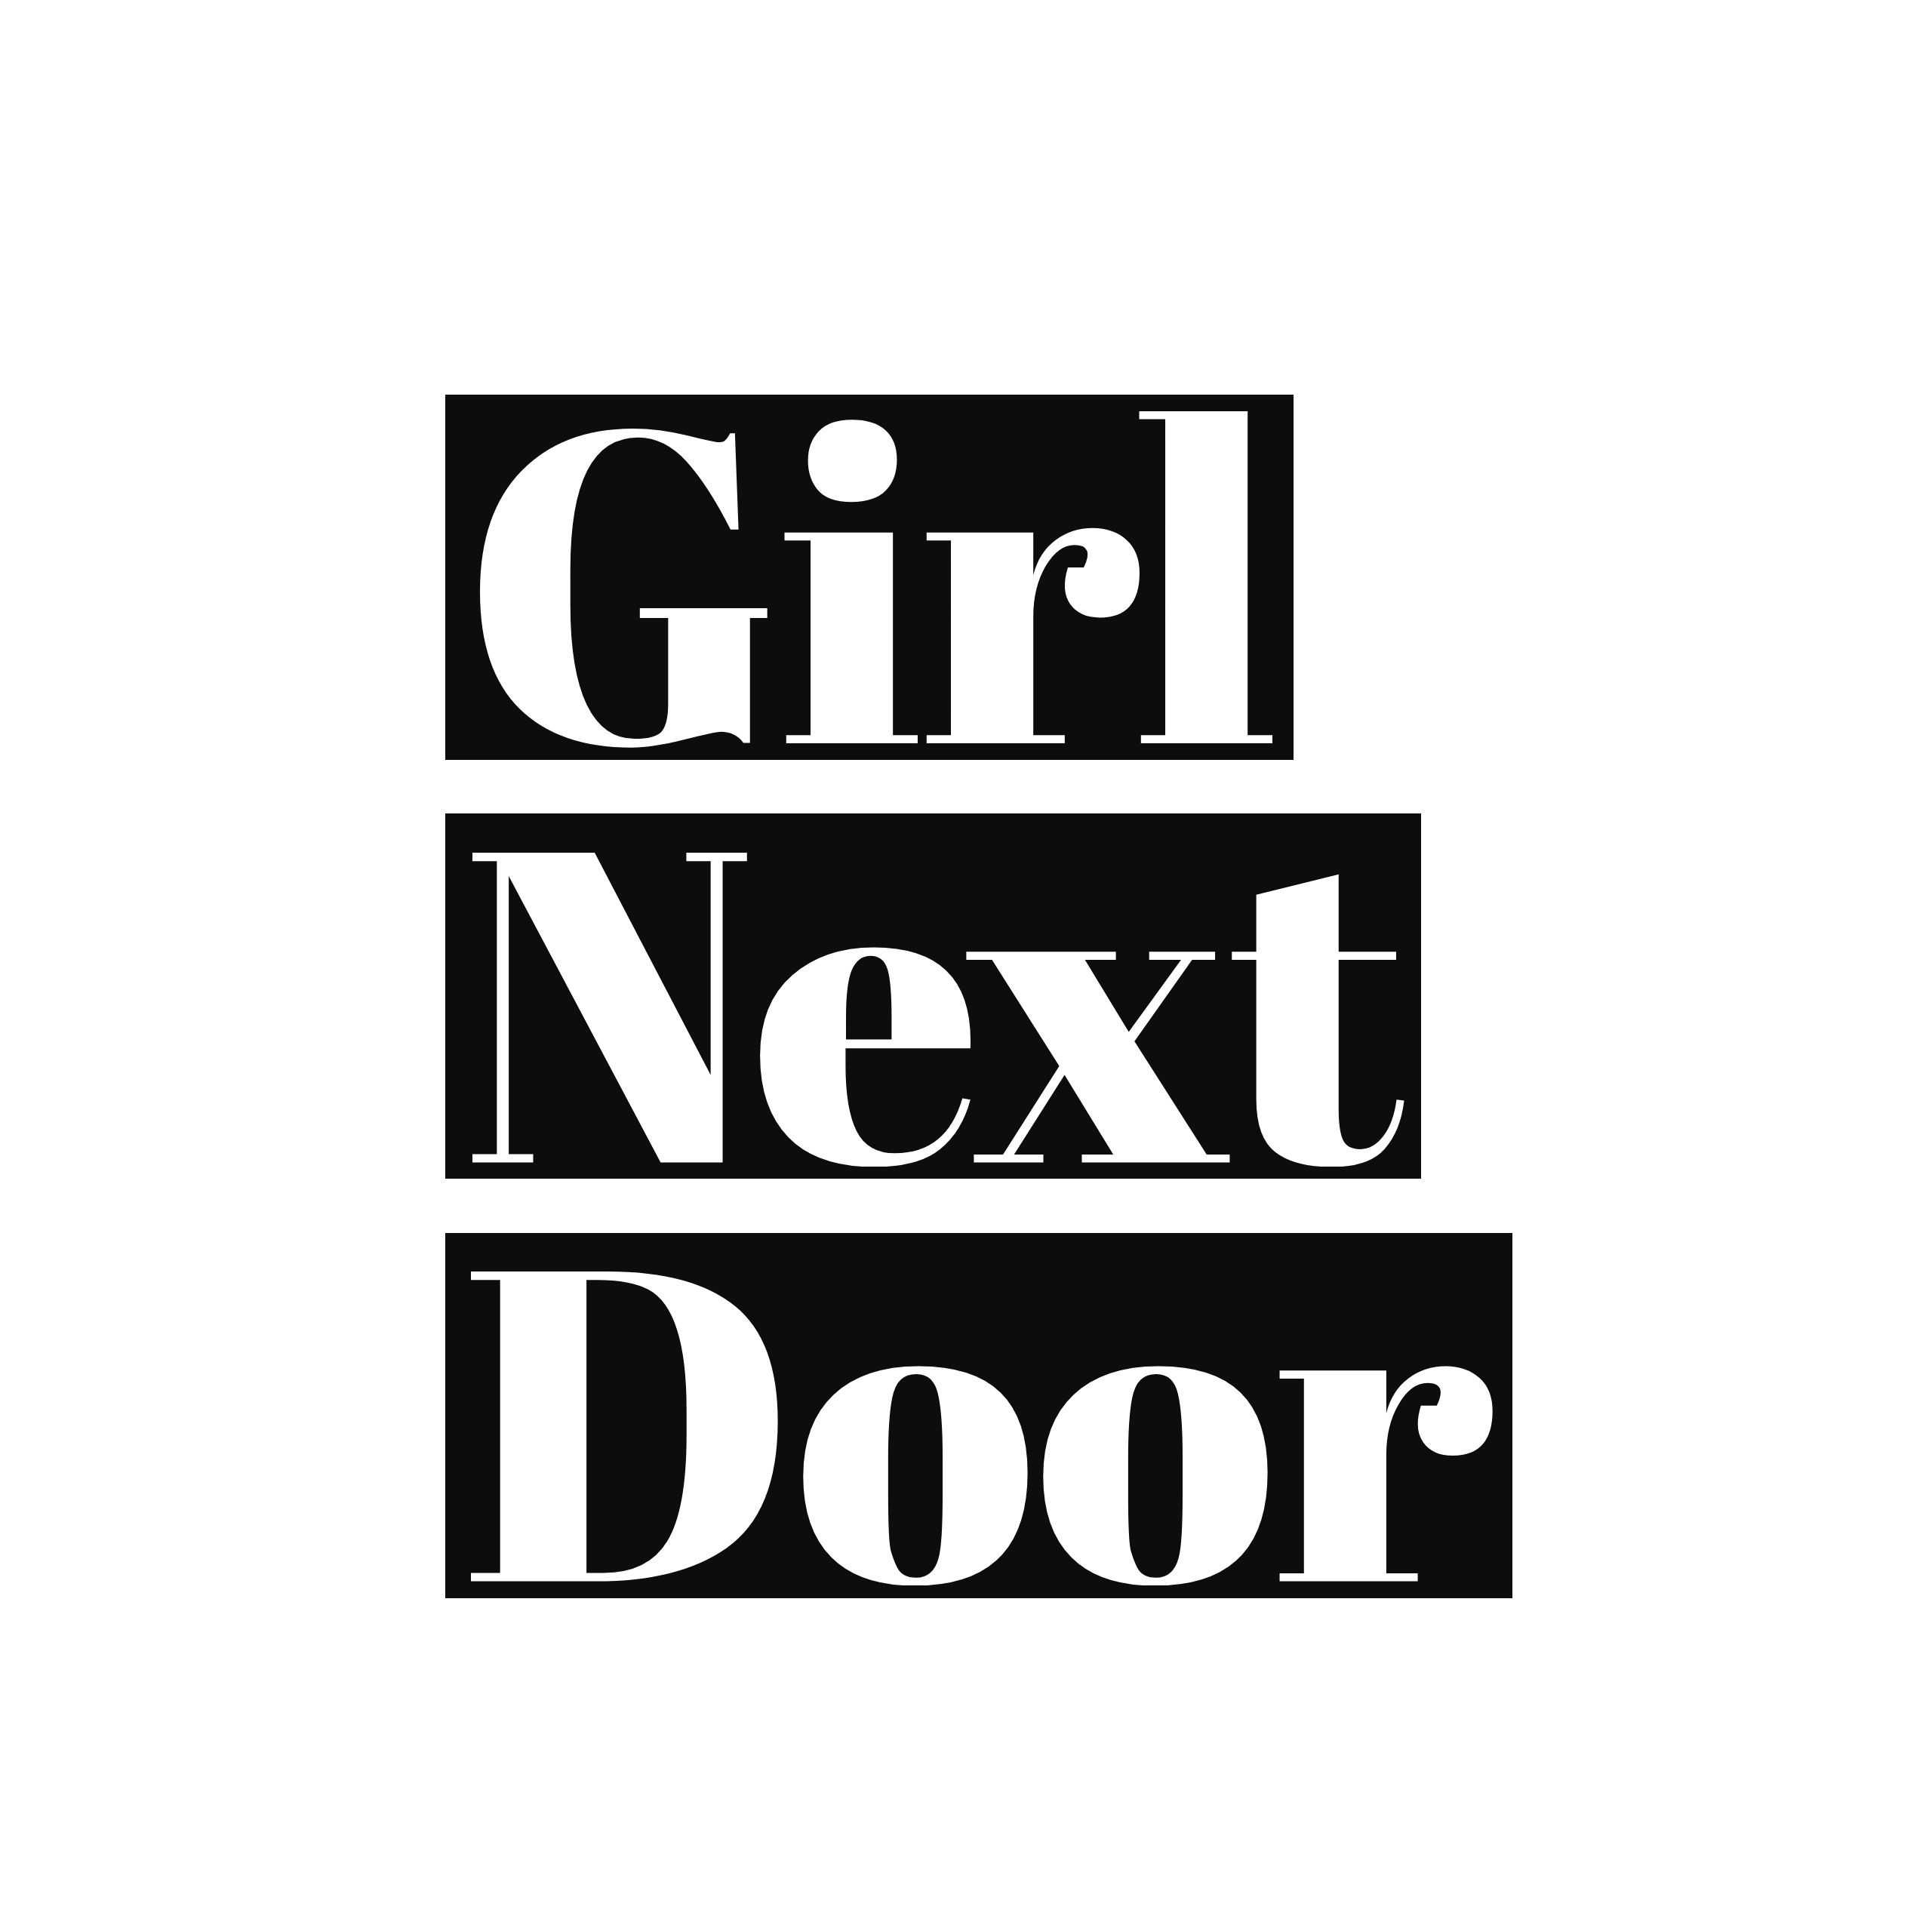 a__girlnextdoor instagram :- a__girlnextdoor, mirakee:- a__girlnextdoor, your qoute :- a__girlnextdoor